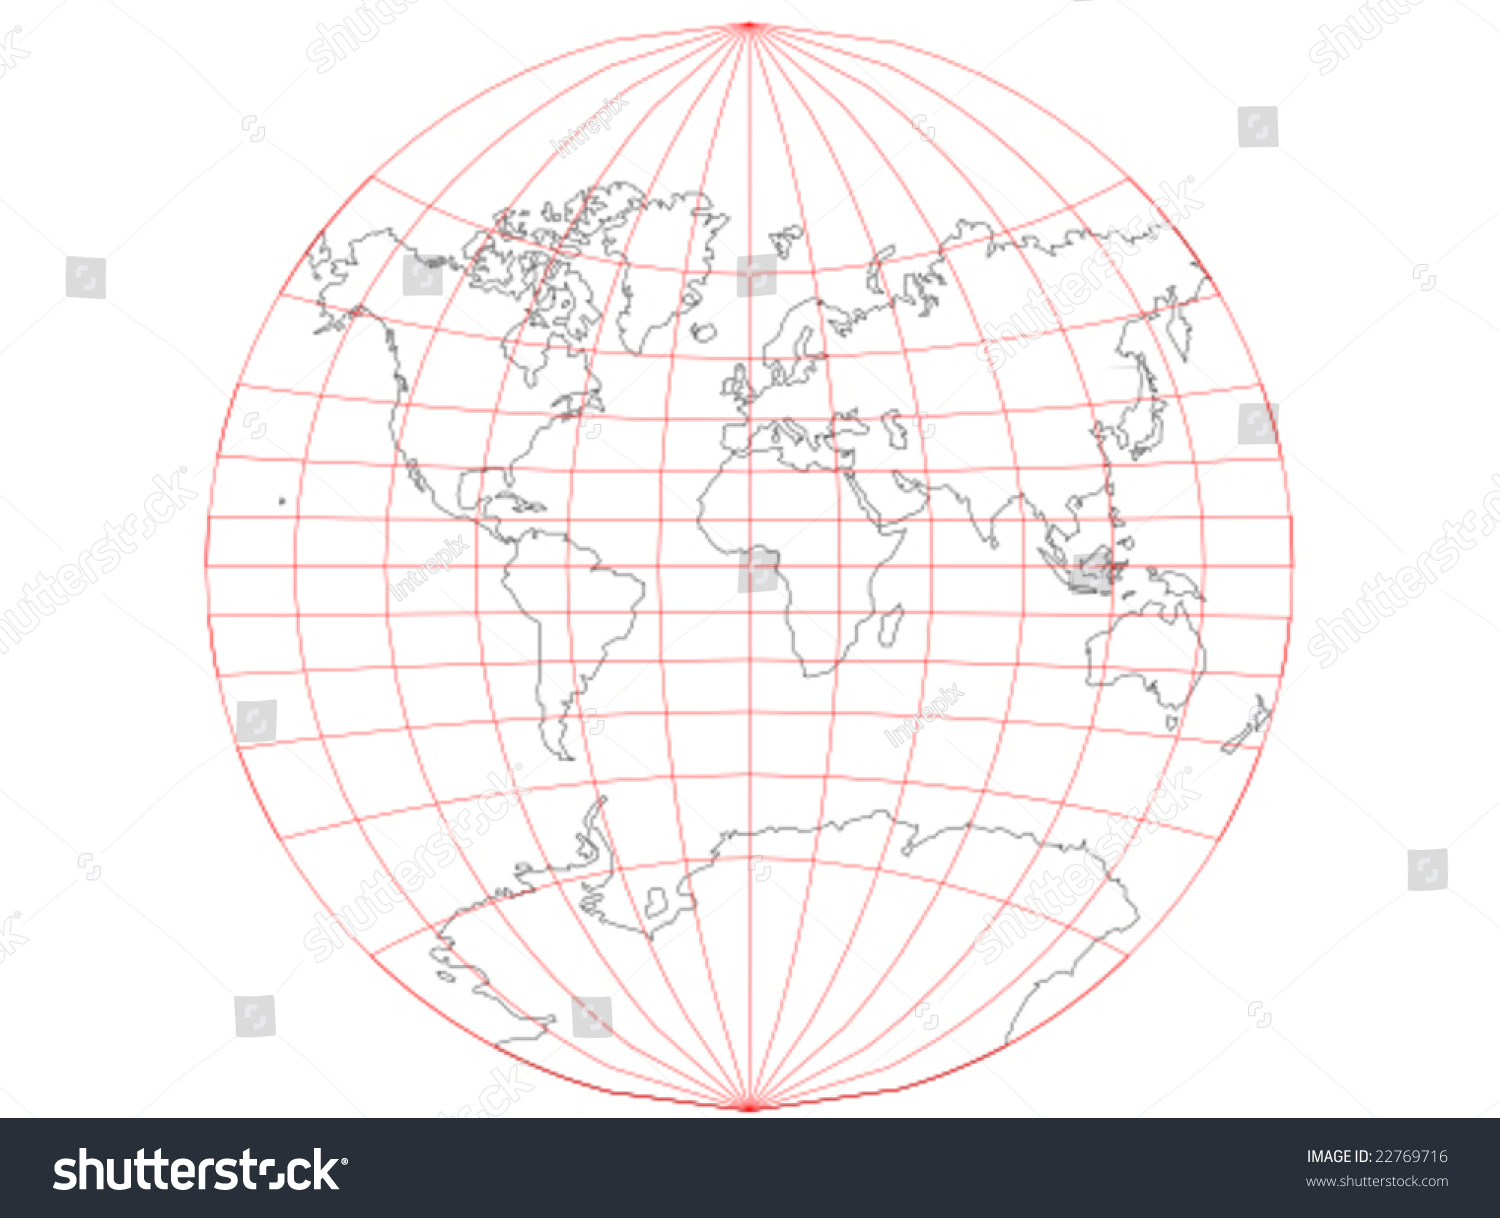 Vector map world map grid that stock vector 22769716 shutterstock a vector map of the world with a map grid that uses the van der grinten gumiabroncs Image collections